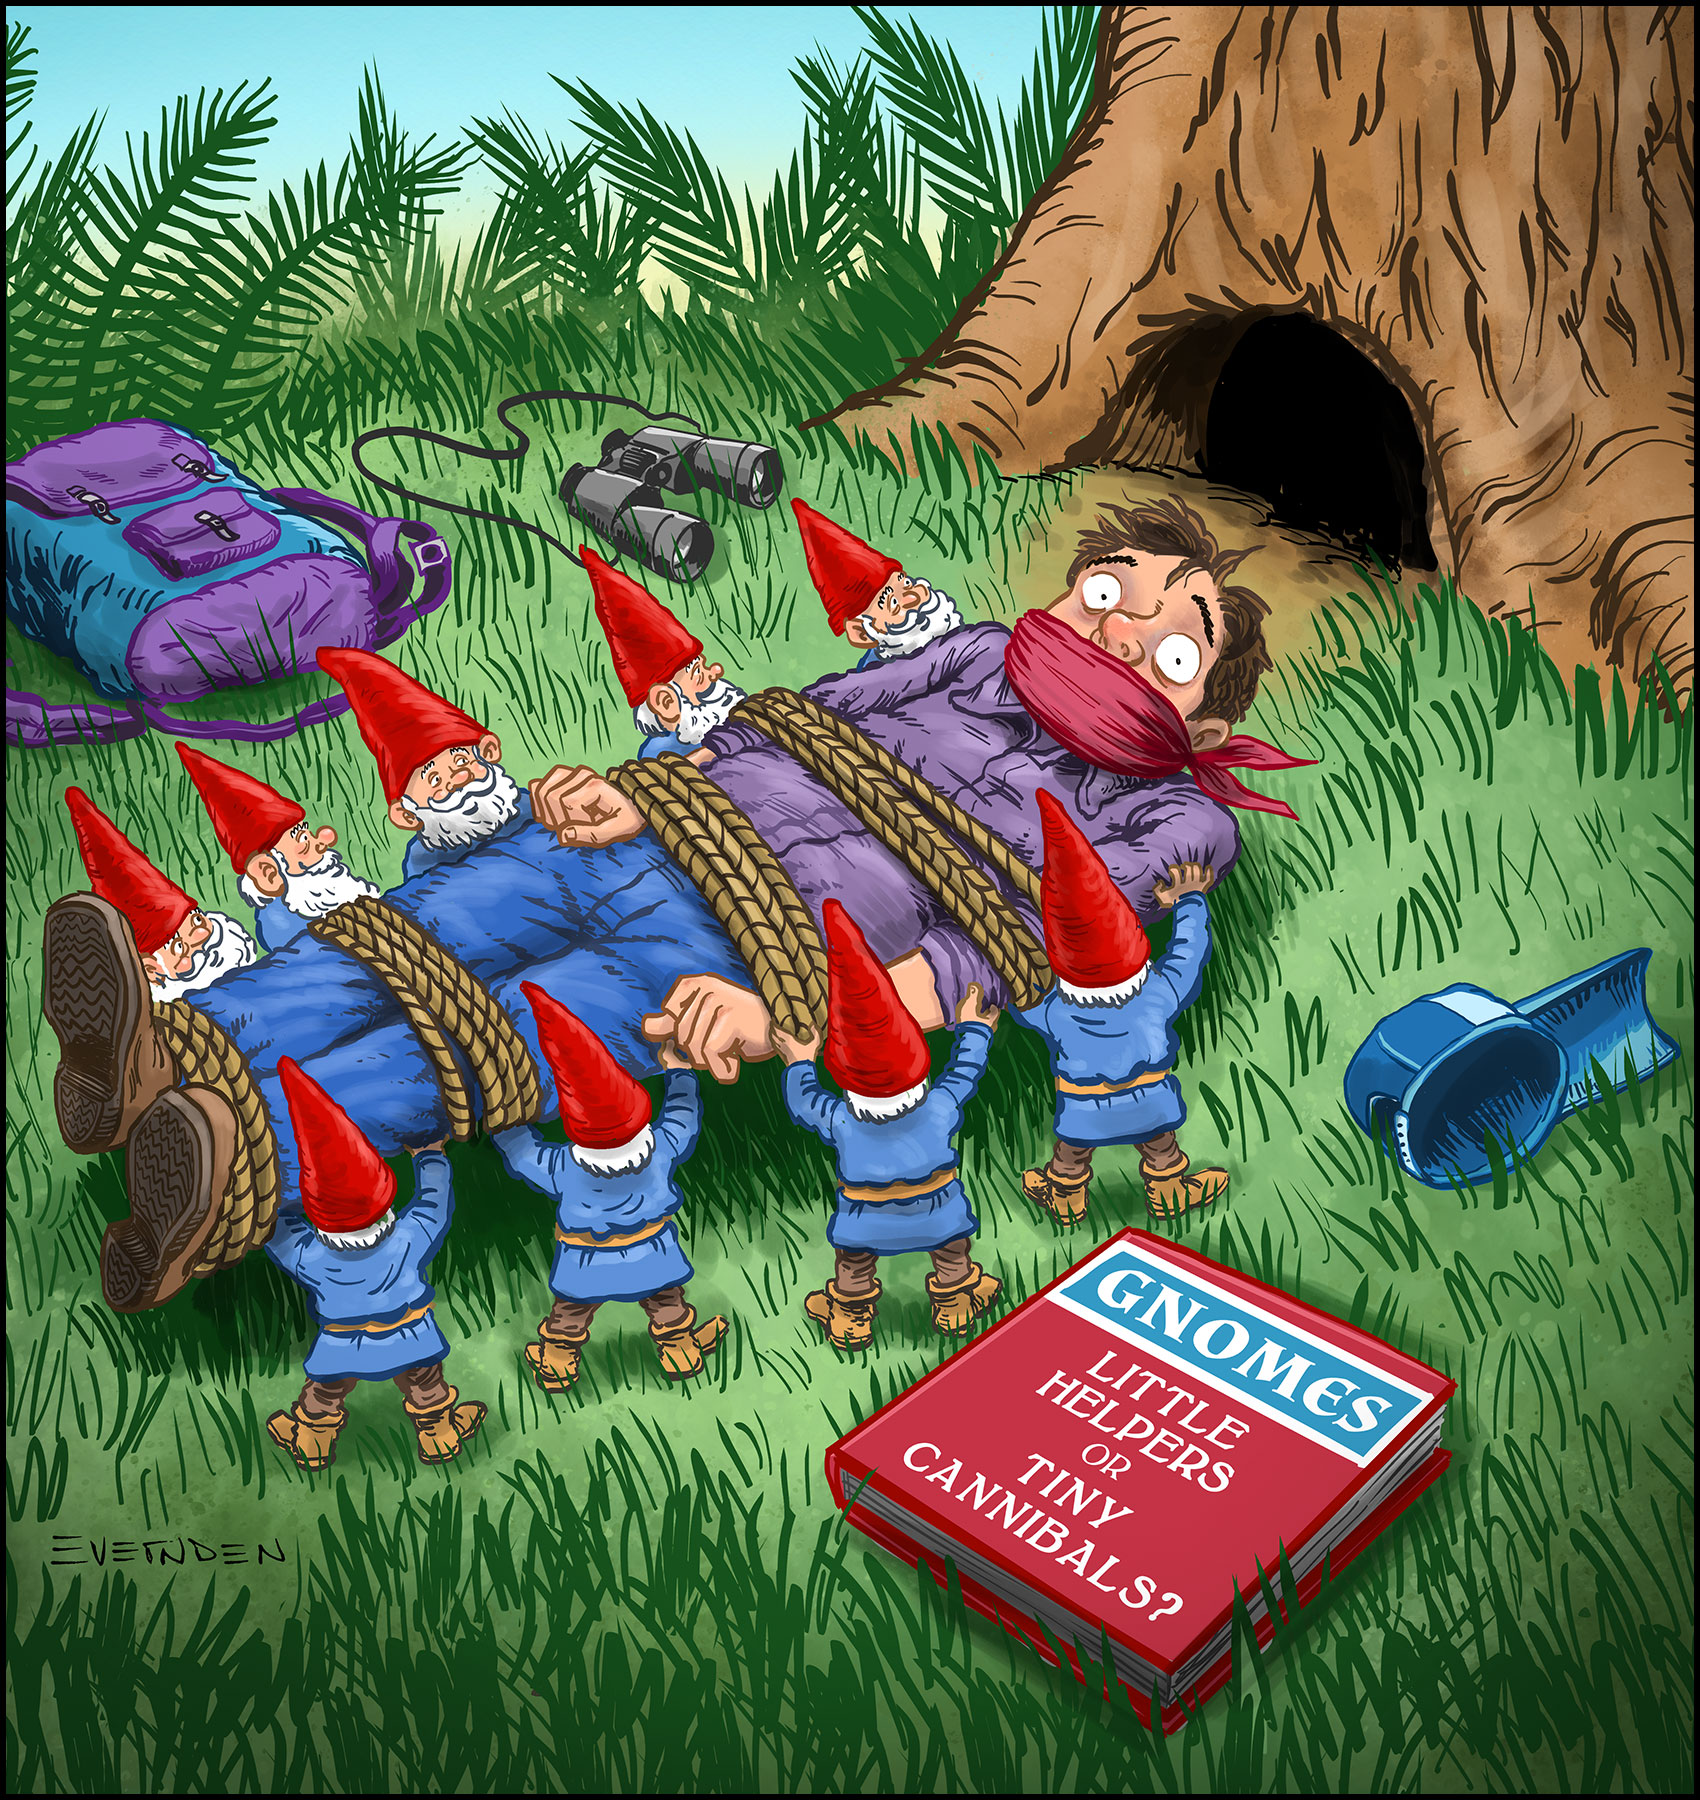 Editorial cartoon by Derek Evernden: A man is tied up by nine gnomes, looking at a book he hasn't read yet called